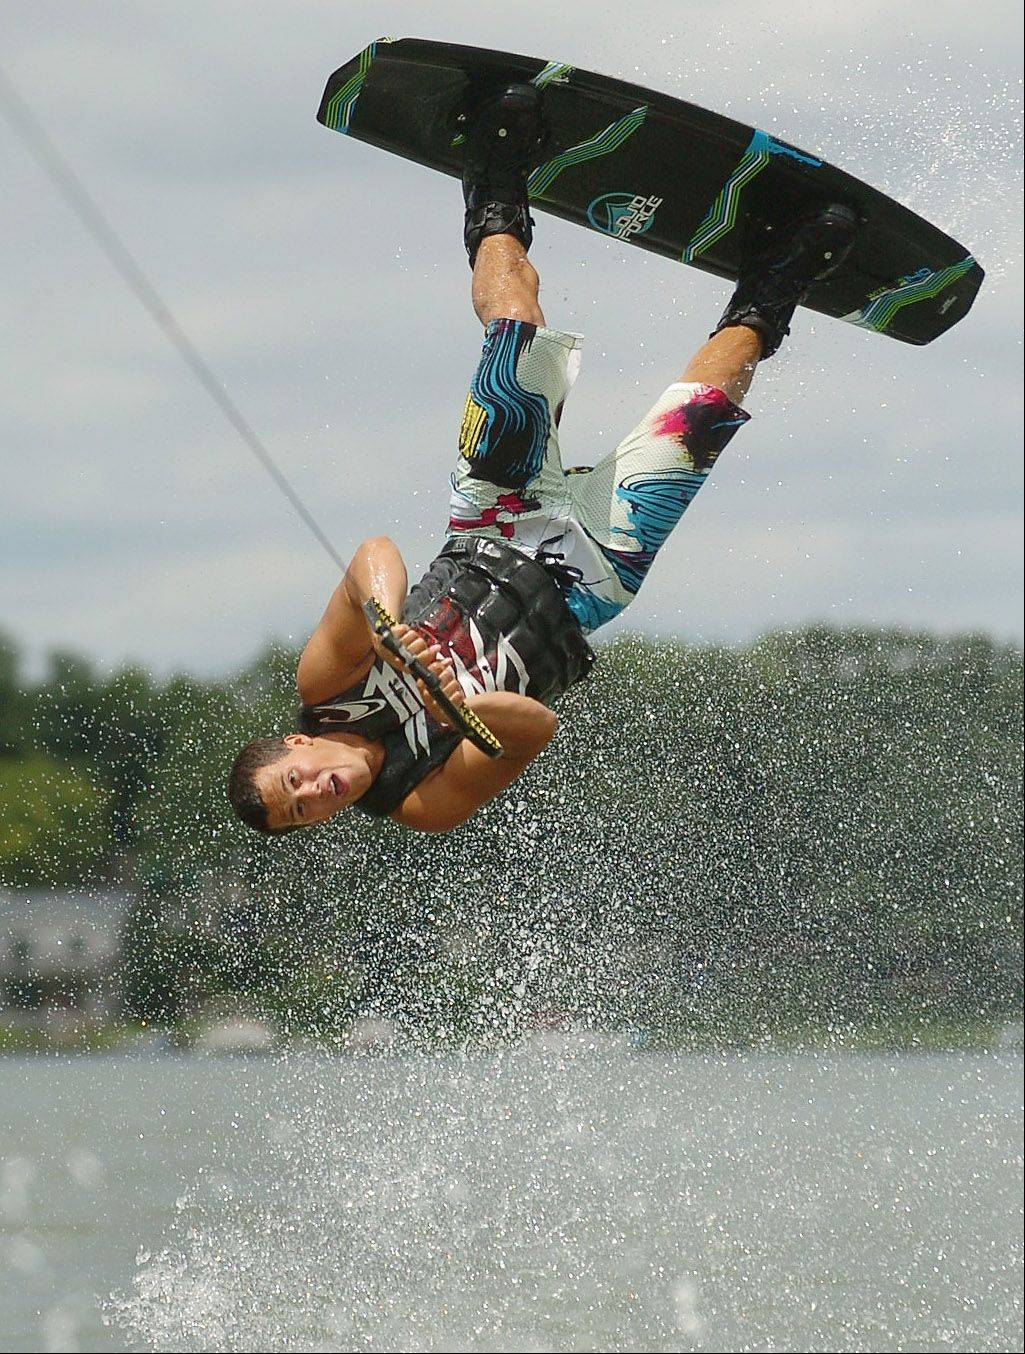 Pierce Homsey of Mundelein performs some wakeboarding tricks at the Mundelein Park and Recreation District's Diamond Lake Wakeboard Competition and Demo.